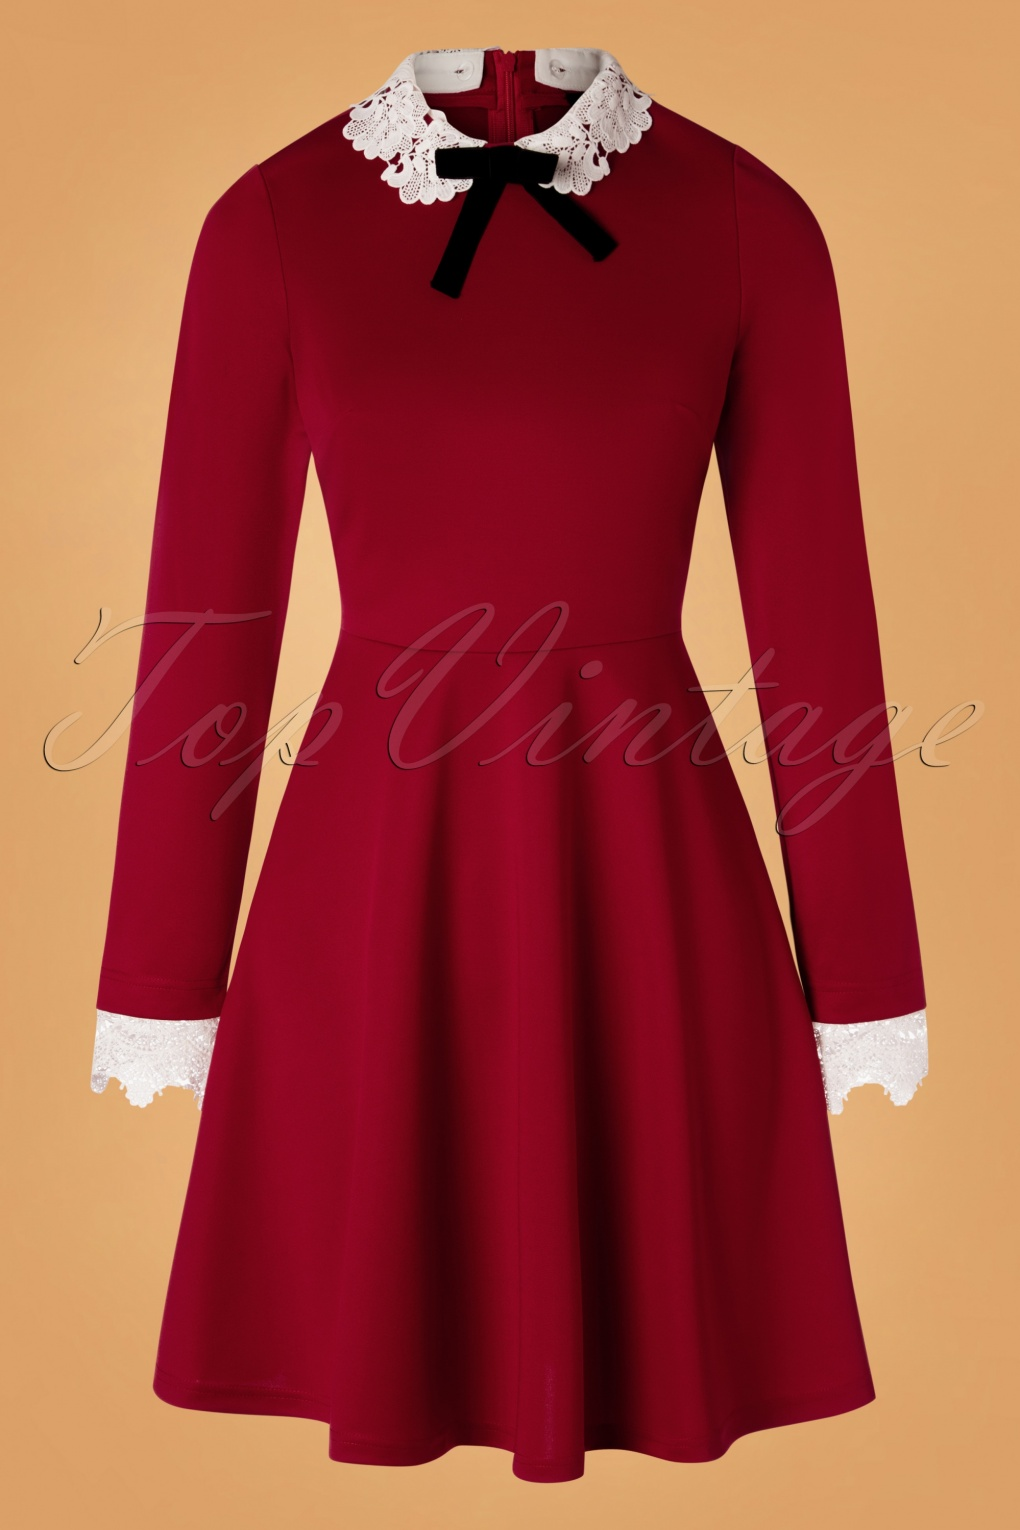 1960s Style Dresses, Clothing, Shoes UK 60s Ricci Dress in Red £61.02 AT vintagedancer.com